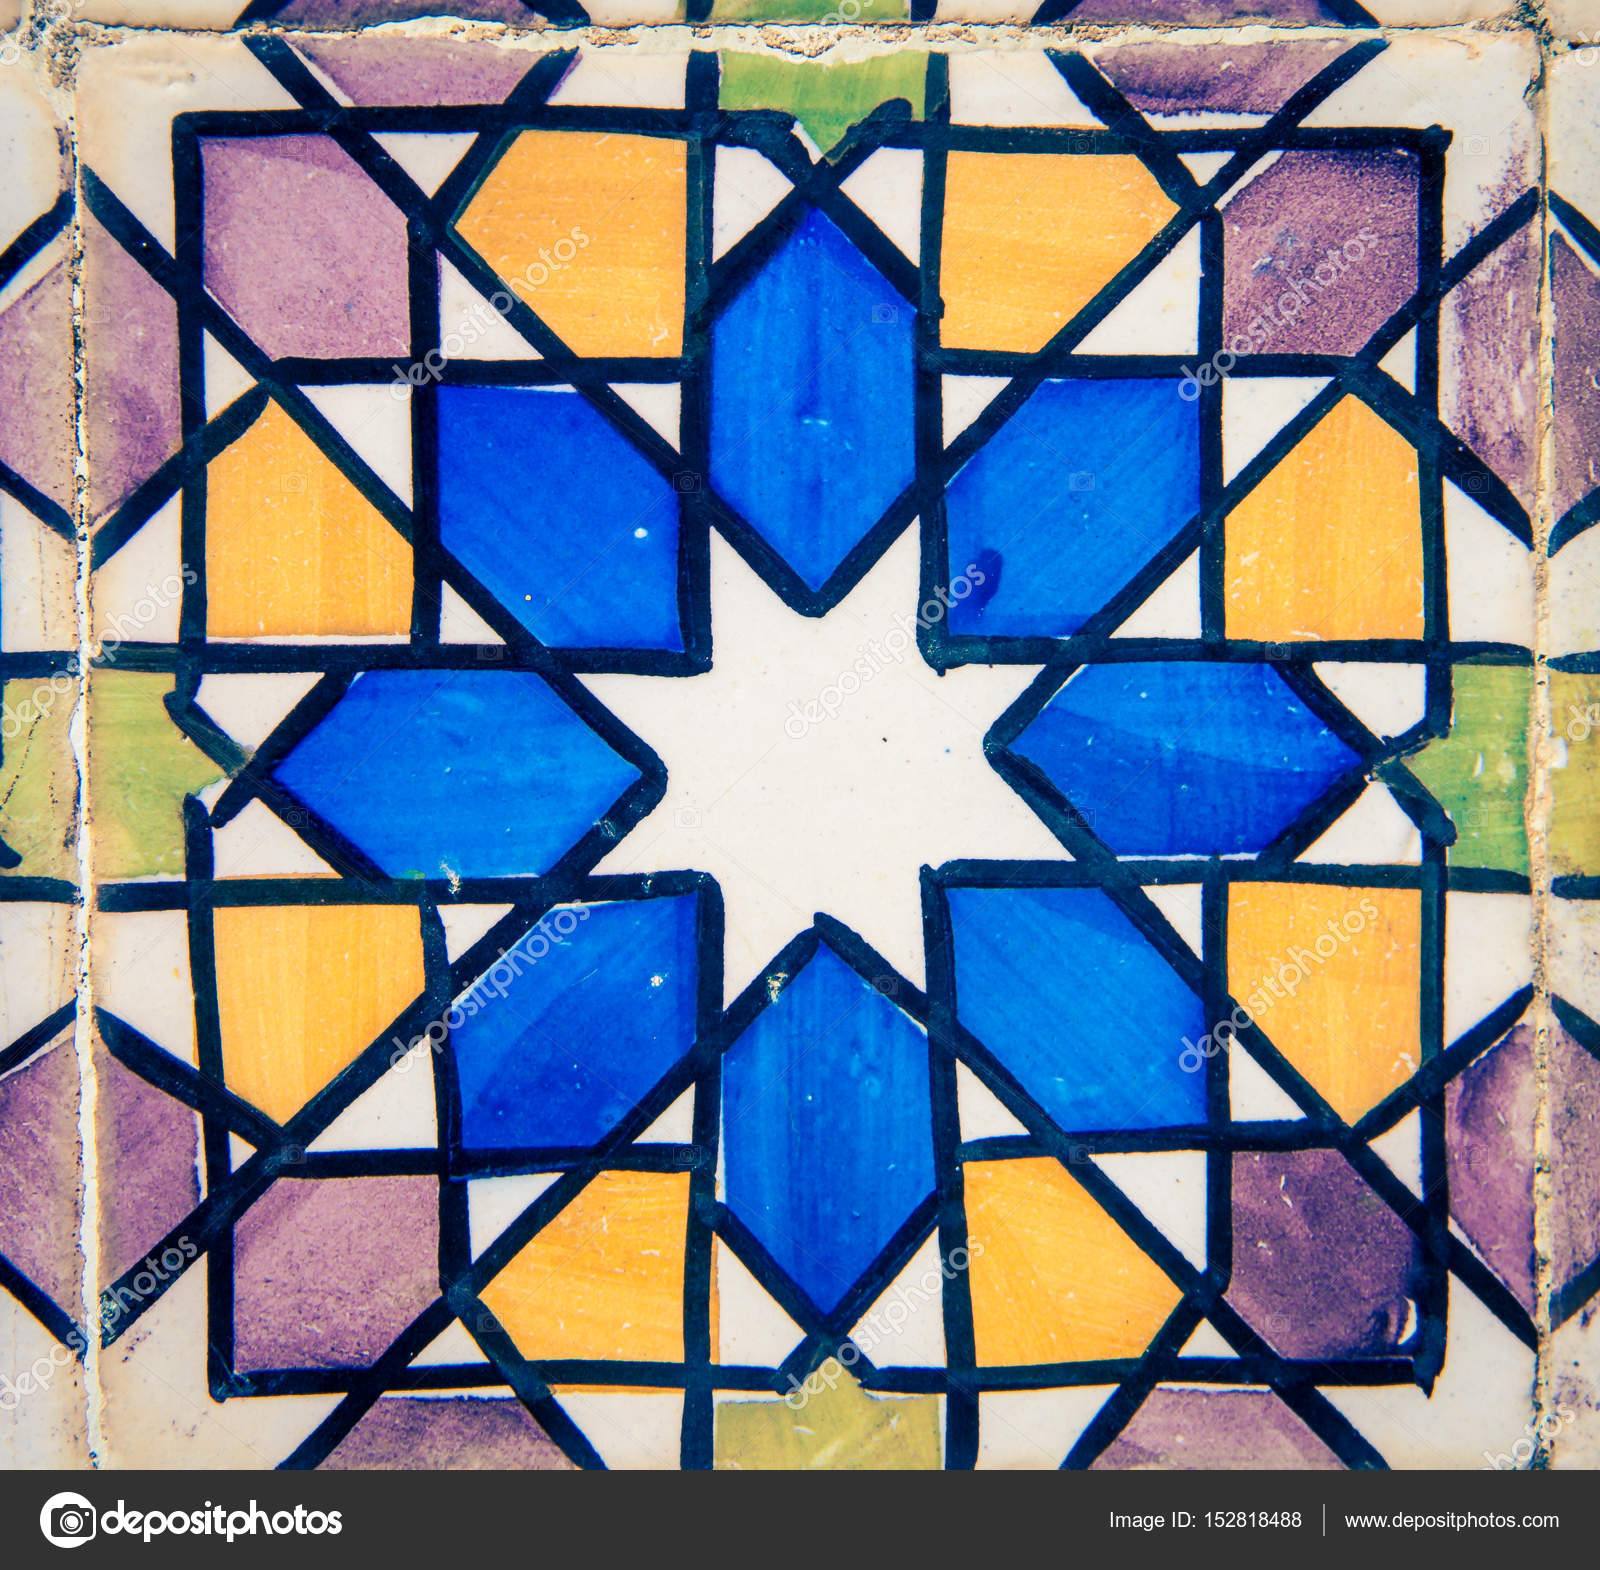 colorful ceramic tiles sintra — Stock Photo © rusty426 #152818488